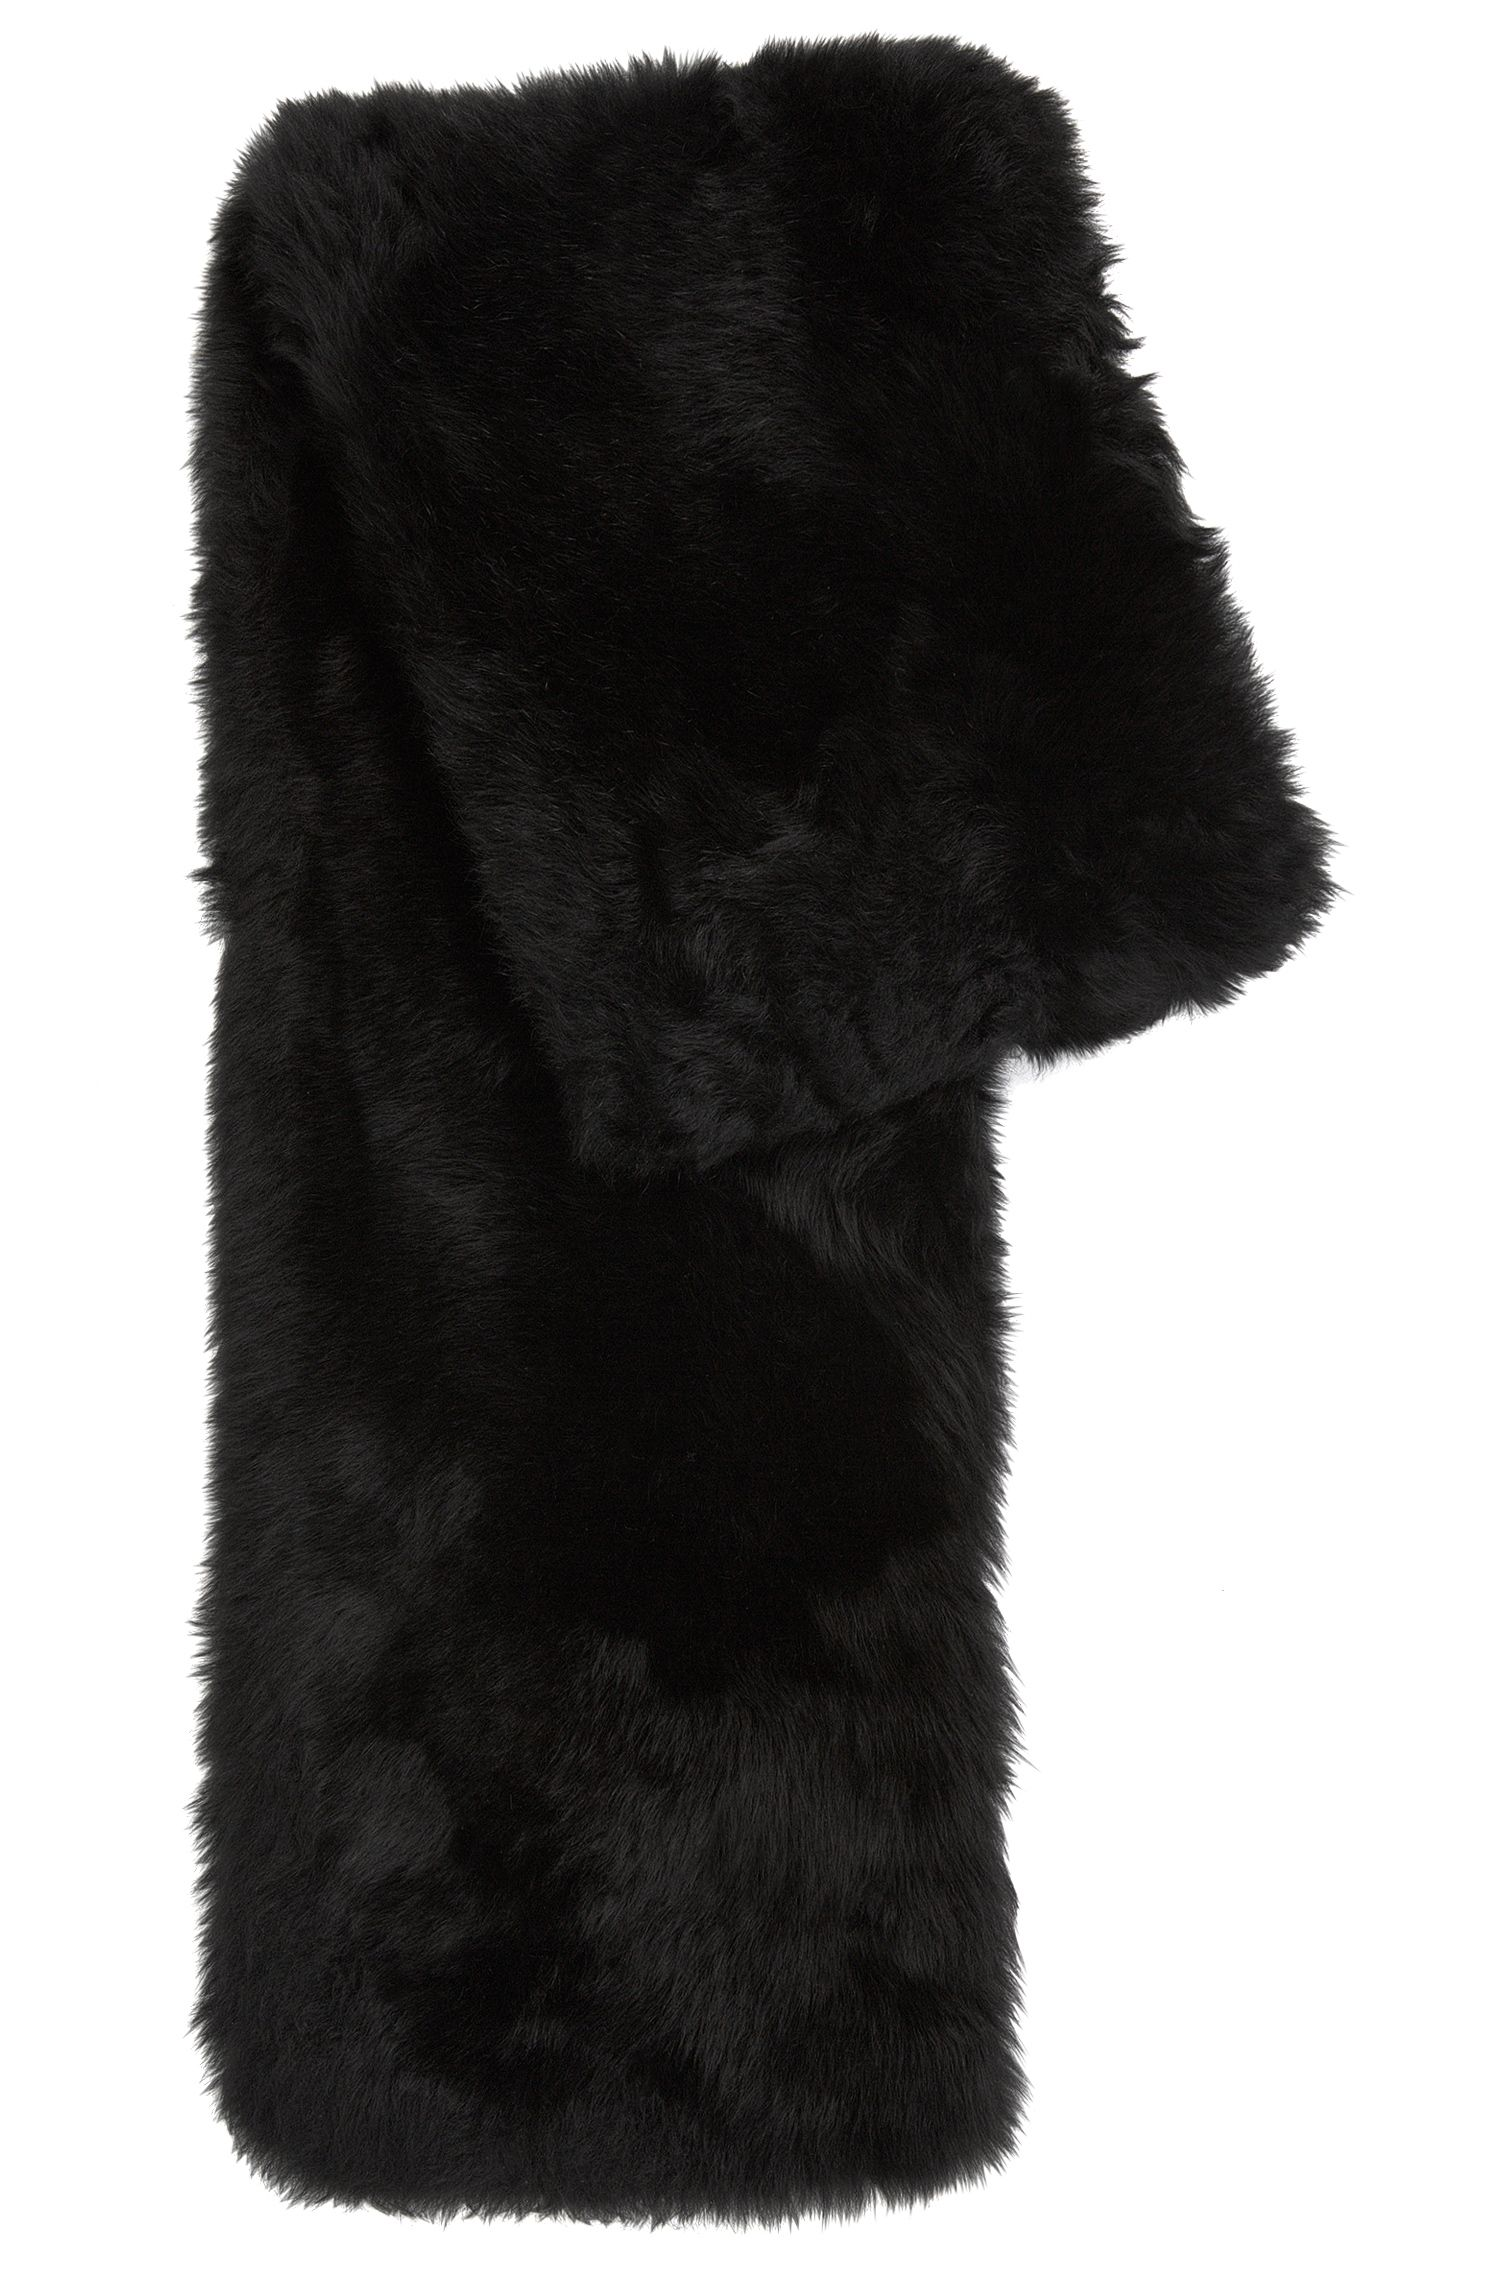 'Scapie' | Brushed Lambskin Fur Scarf